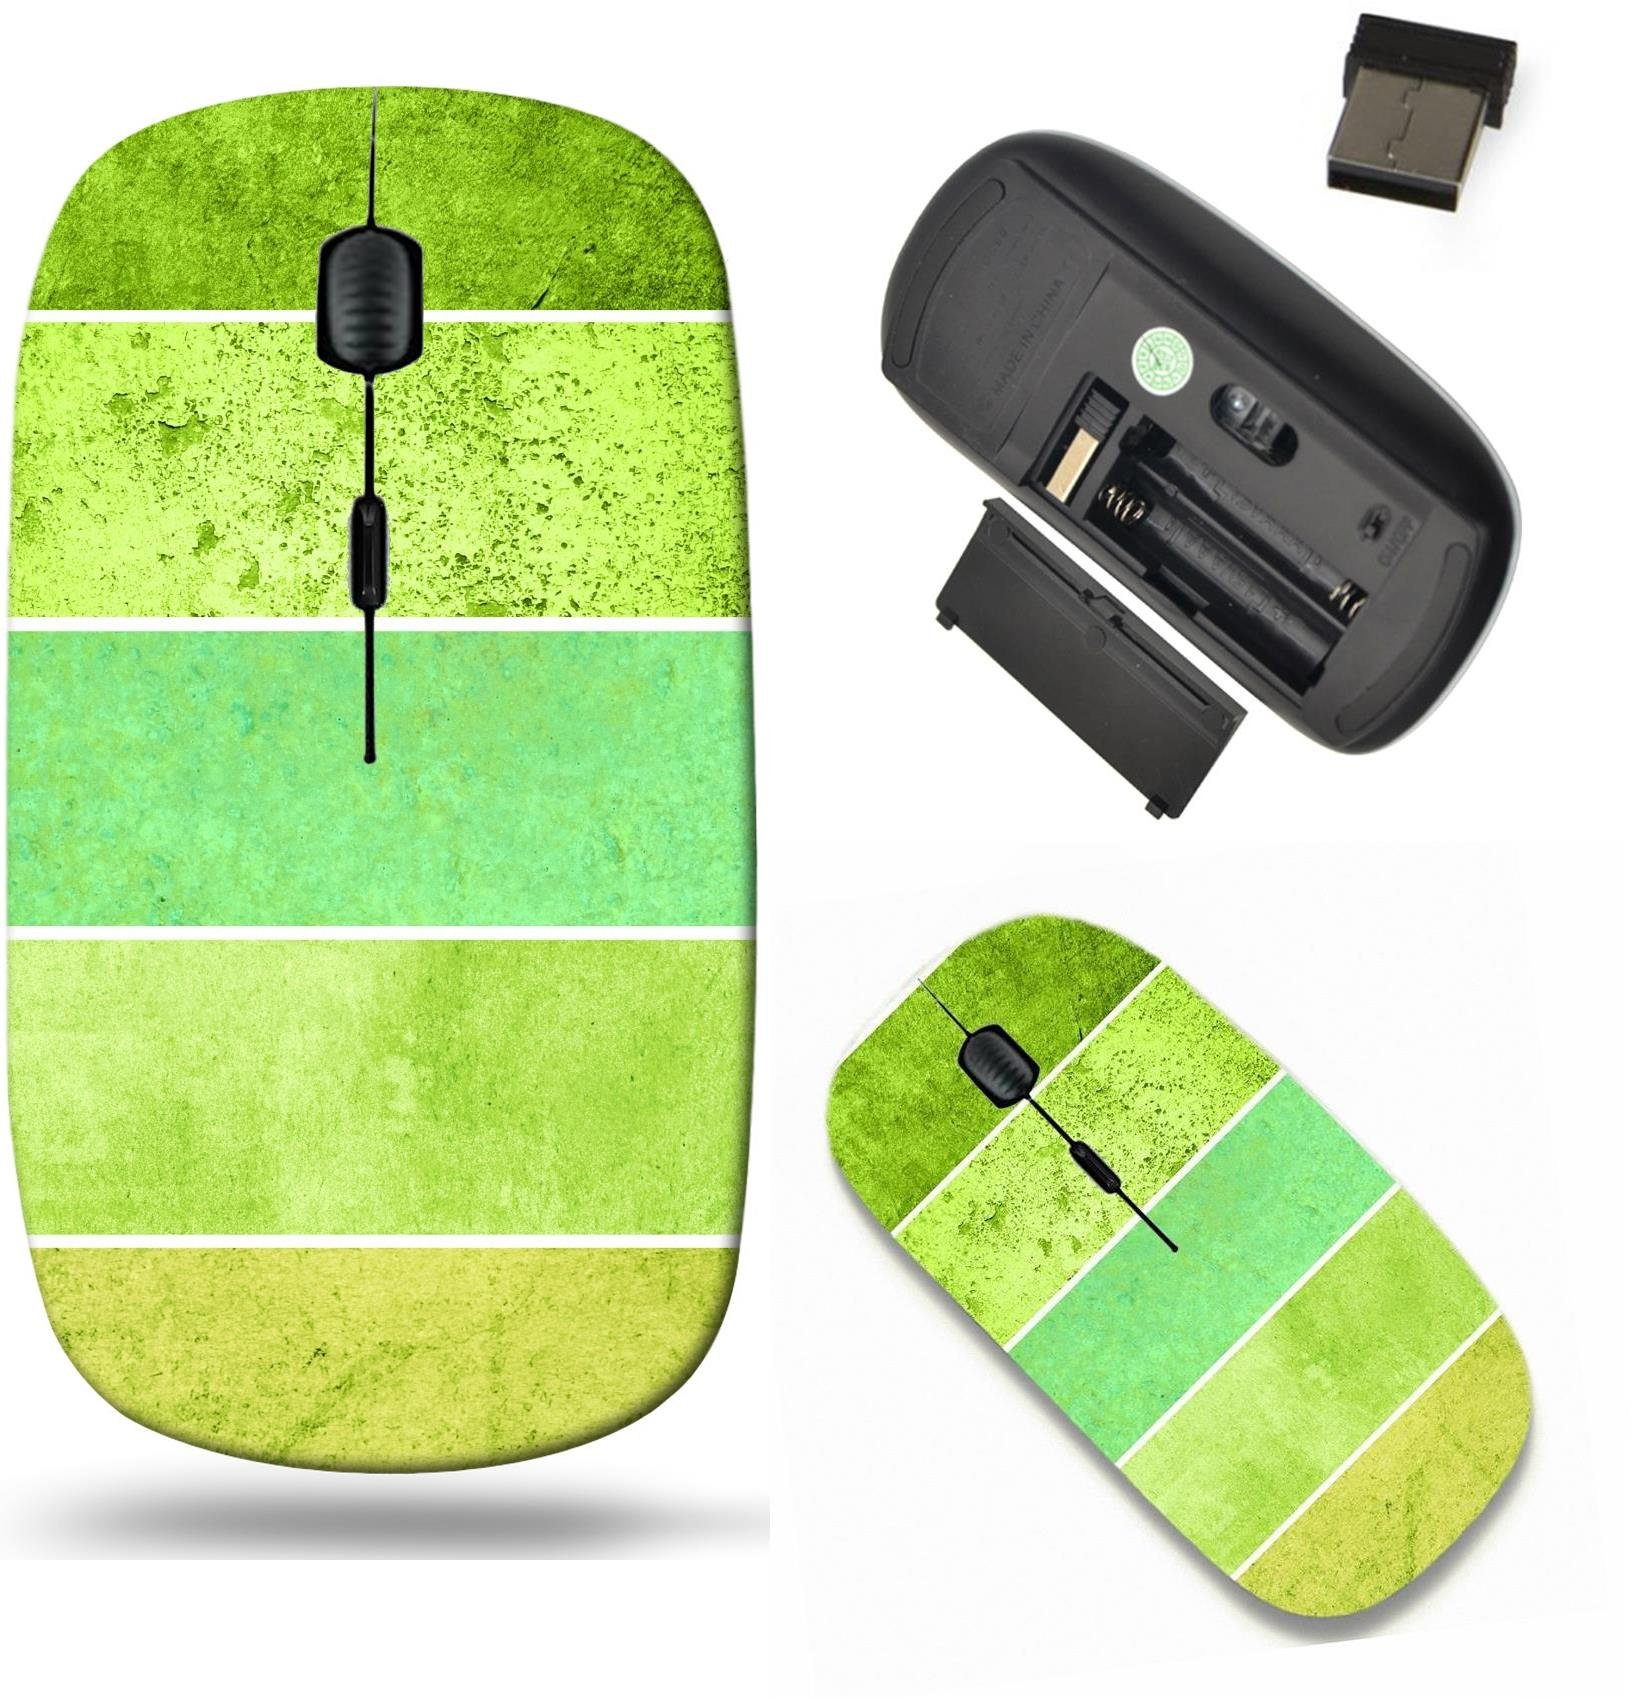 Liili Wireless Mouse Travel 2.4G Wireless Mice with USB Receiver, Click with 1000 DPI for notebook, pc, laptop, computer, mac book The Best of Collection old fashioned grunge background 29214839